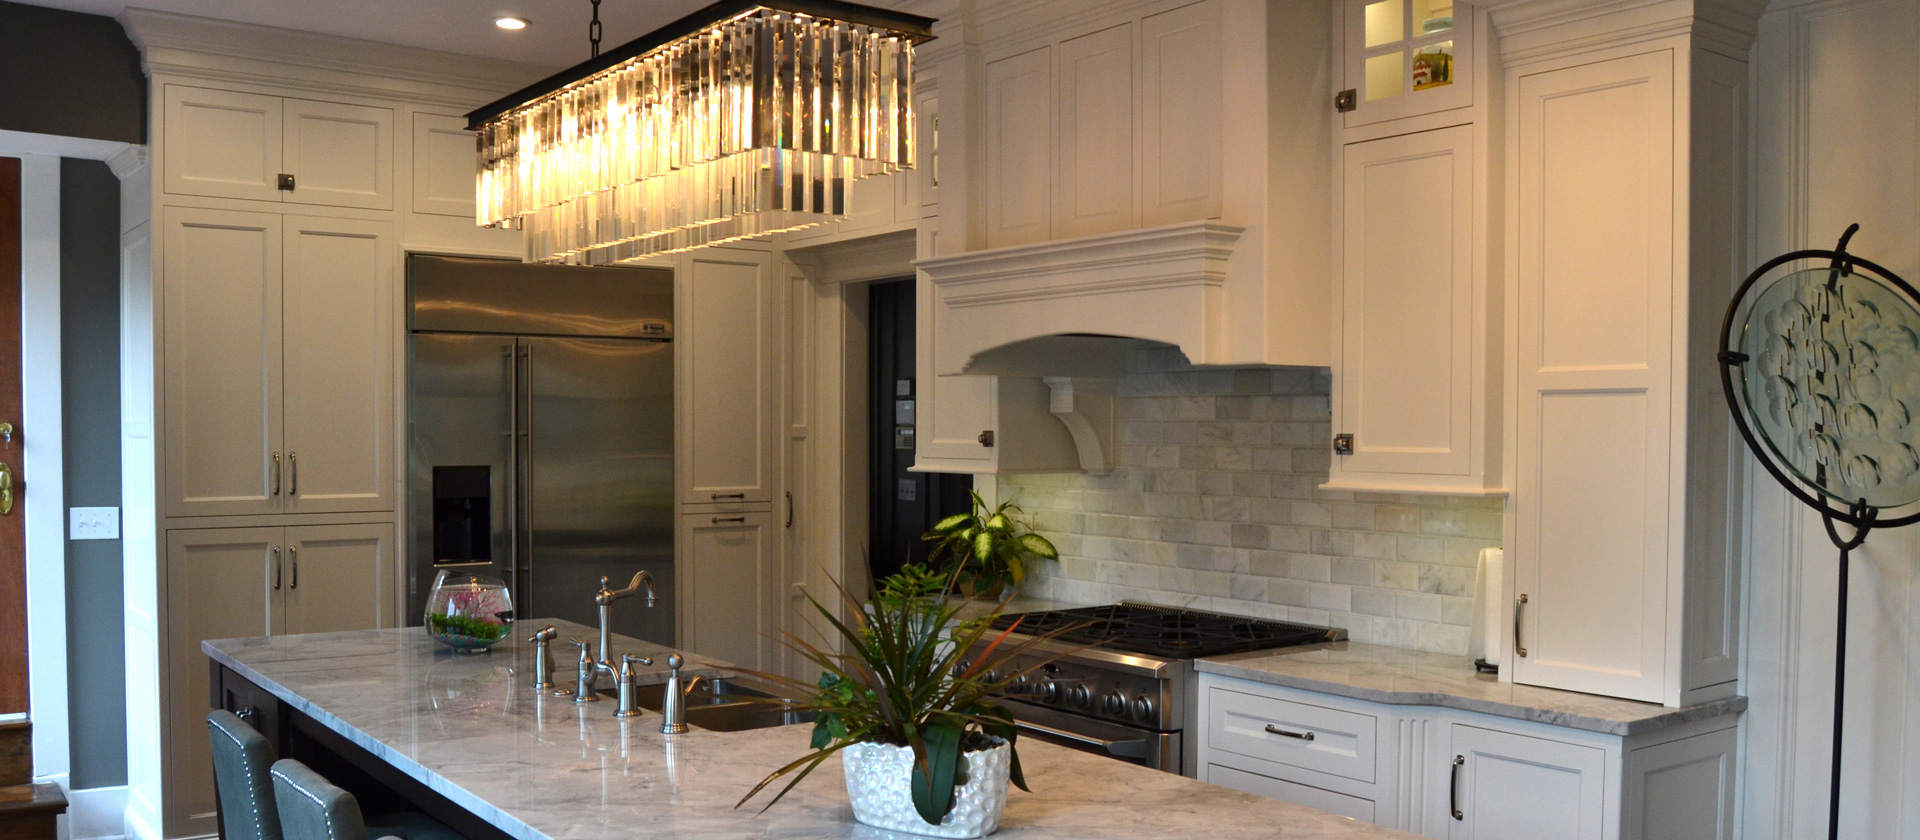 Custom Designed Kitchens and Bathrooms in Columbia, MO